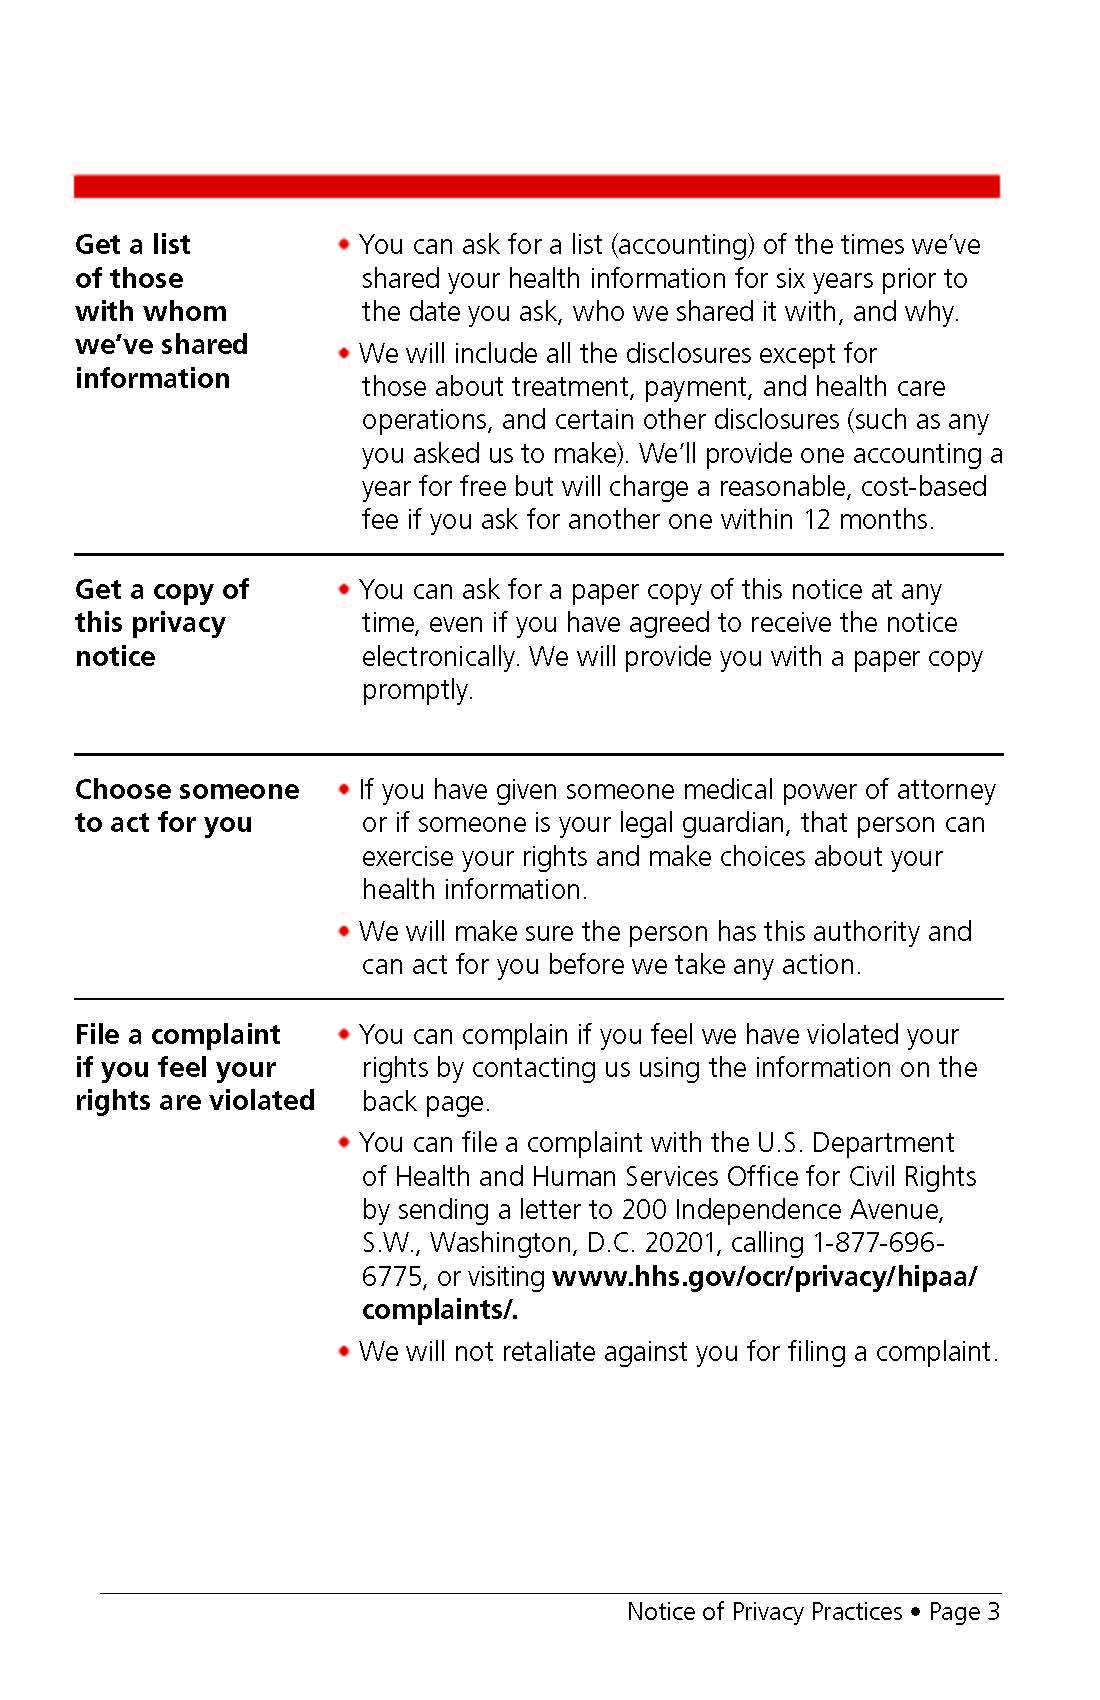 Privacy Practices Notice Booklet_Page_3.jpg